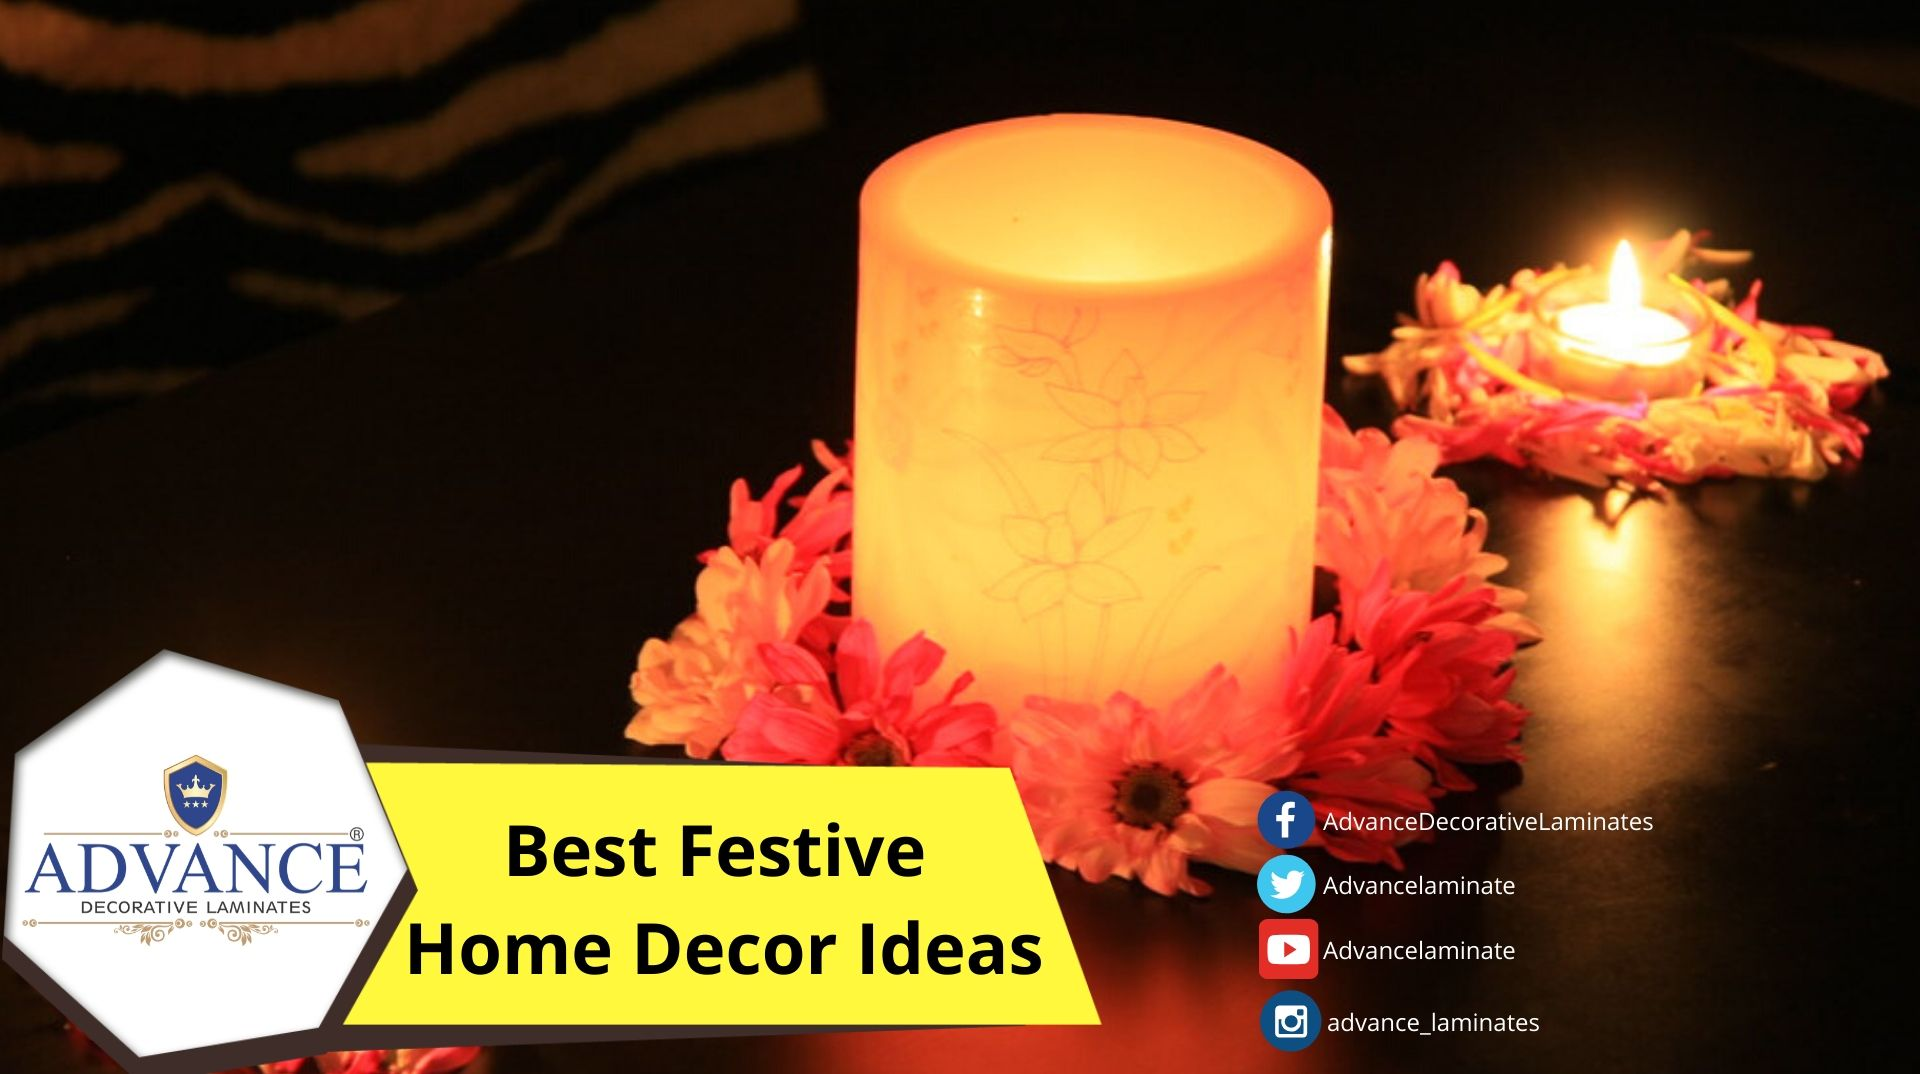 Best Festive Home Décor Ideas